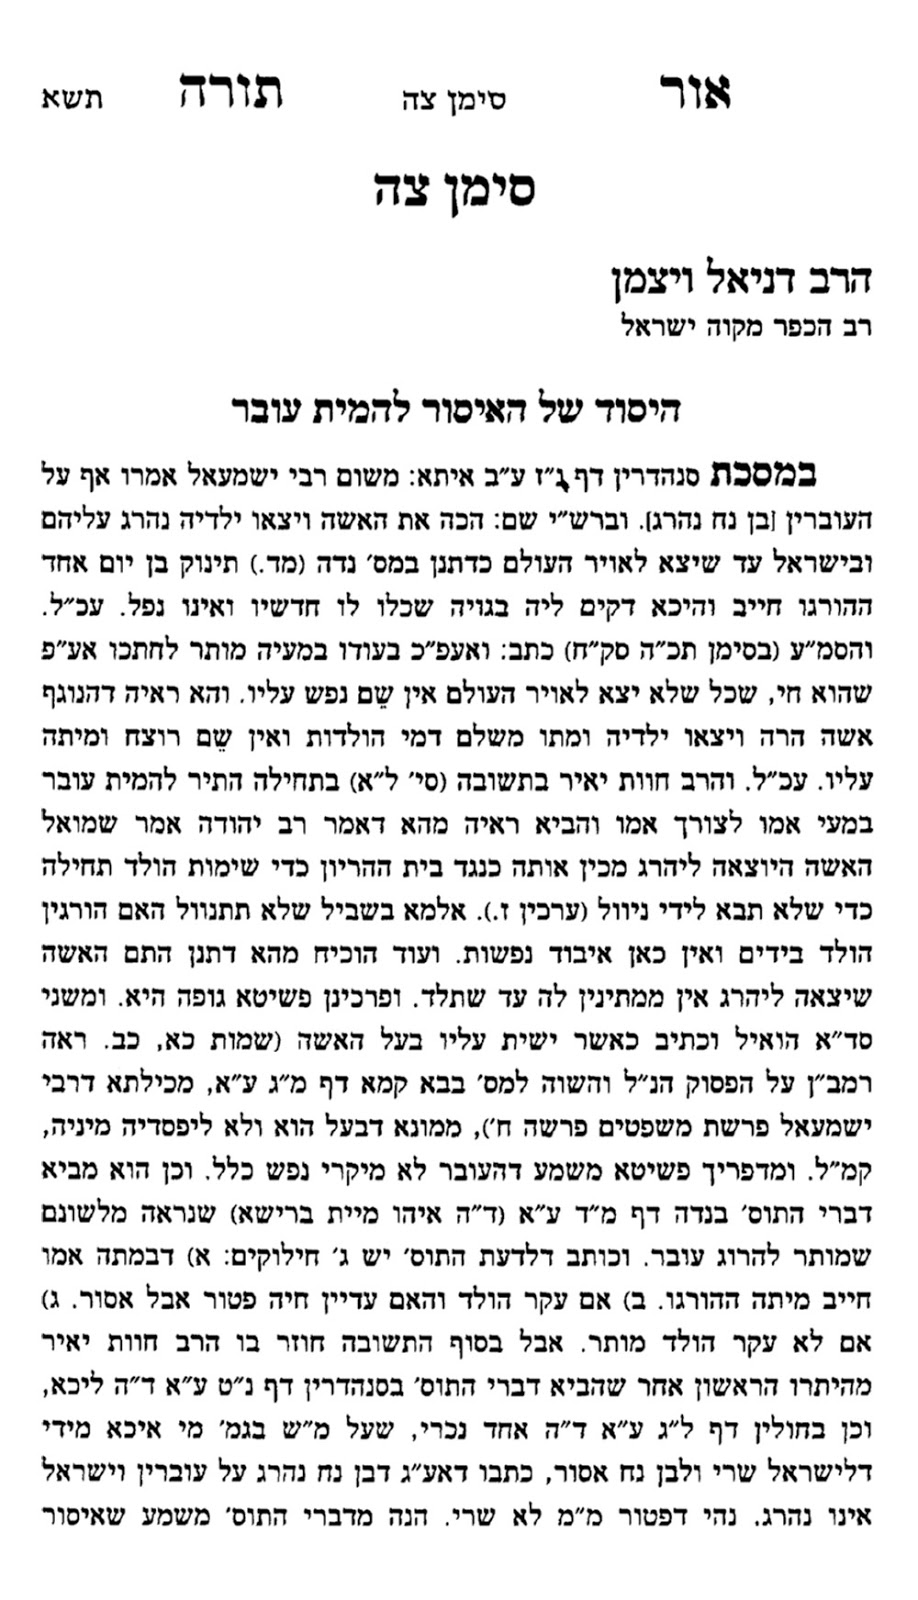 the seforim blog plagiarism halakhic paradox and the malbim on the title he gives to r weinberg s article is also not correct and is taken from the source he plagiarized from